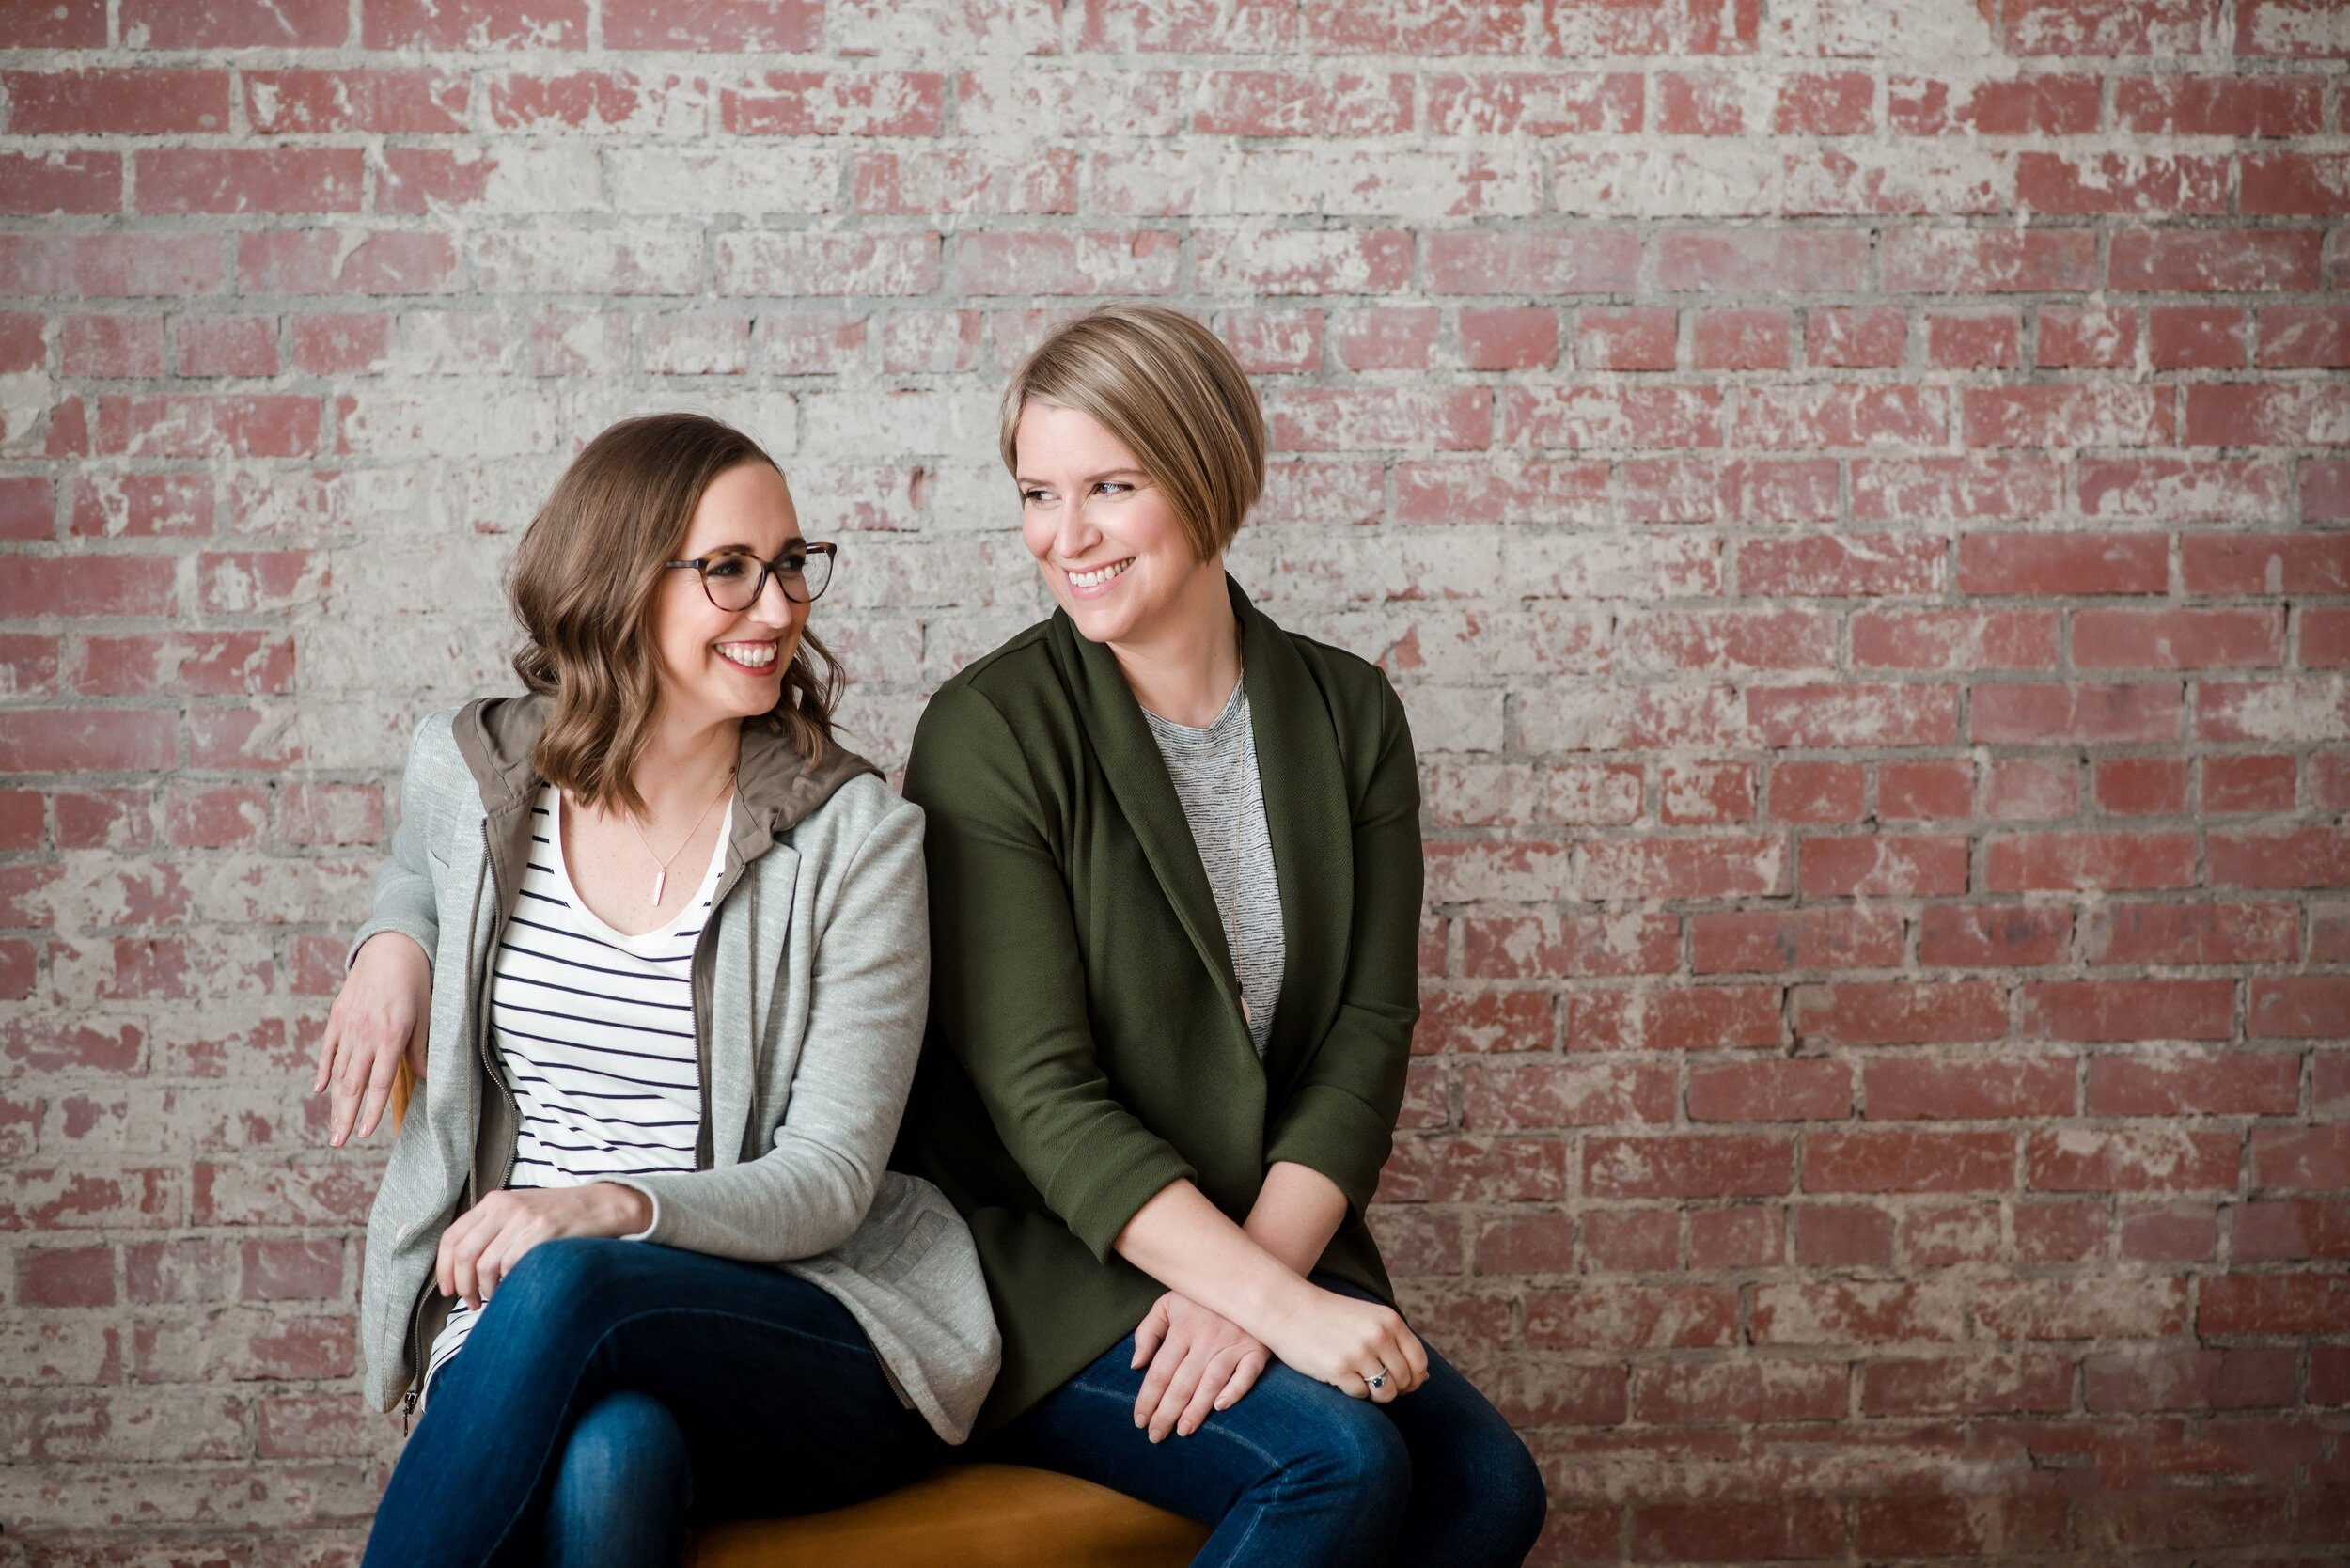 Doulas of Asheville is owned and operated by Christine Robinson and Elizabeth Pauley. Together this Certified Doula/Labor & Delivery Nurse pair has carefully curated a team of professional doulas to support WNC families looking for the absolute best in pregnancy, birth, and post-baby support. -